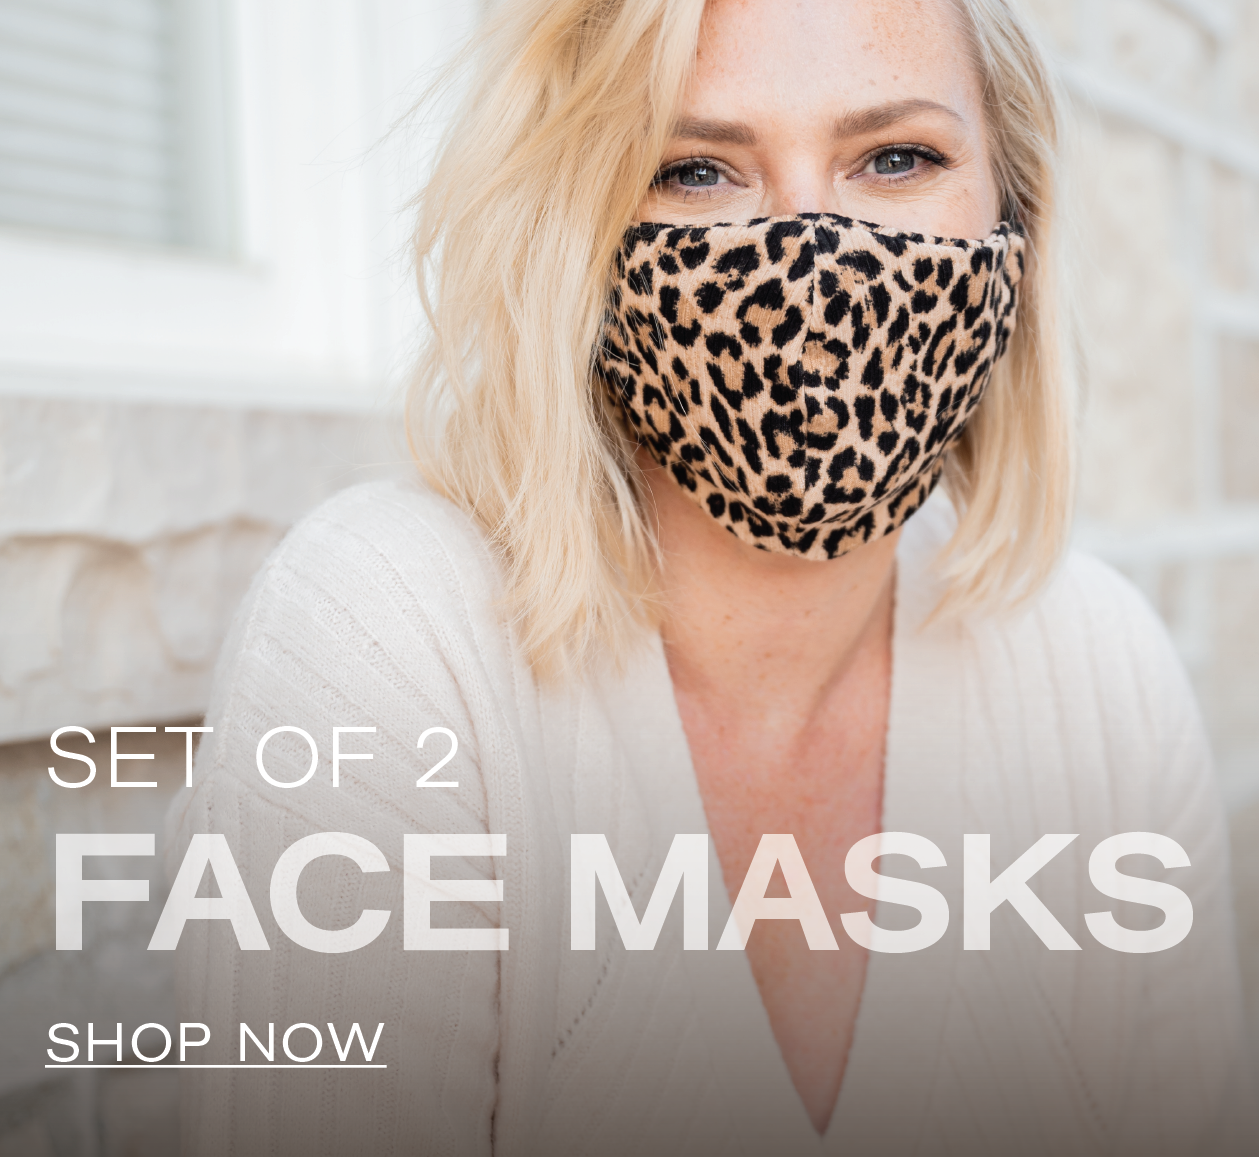 Set of 2 Face Masks